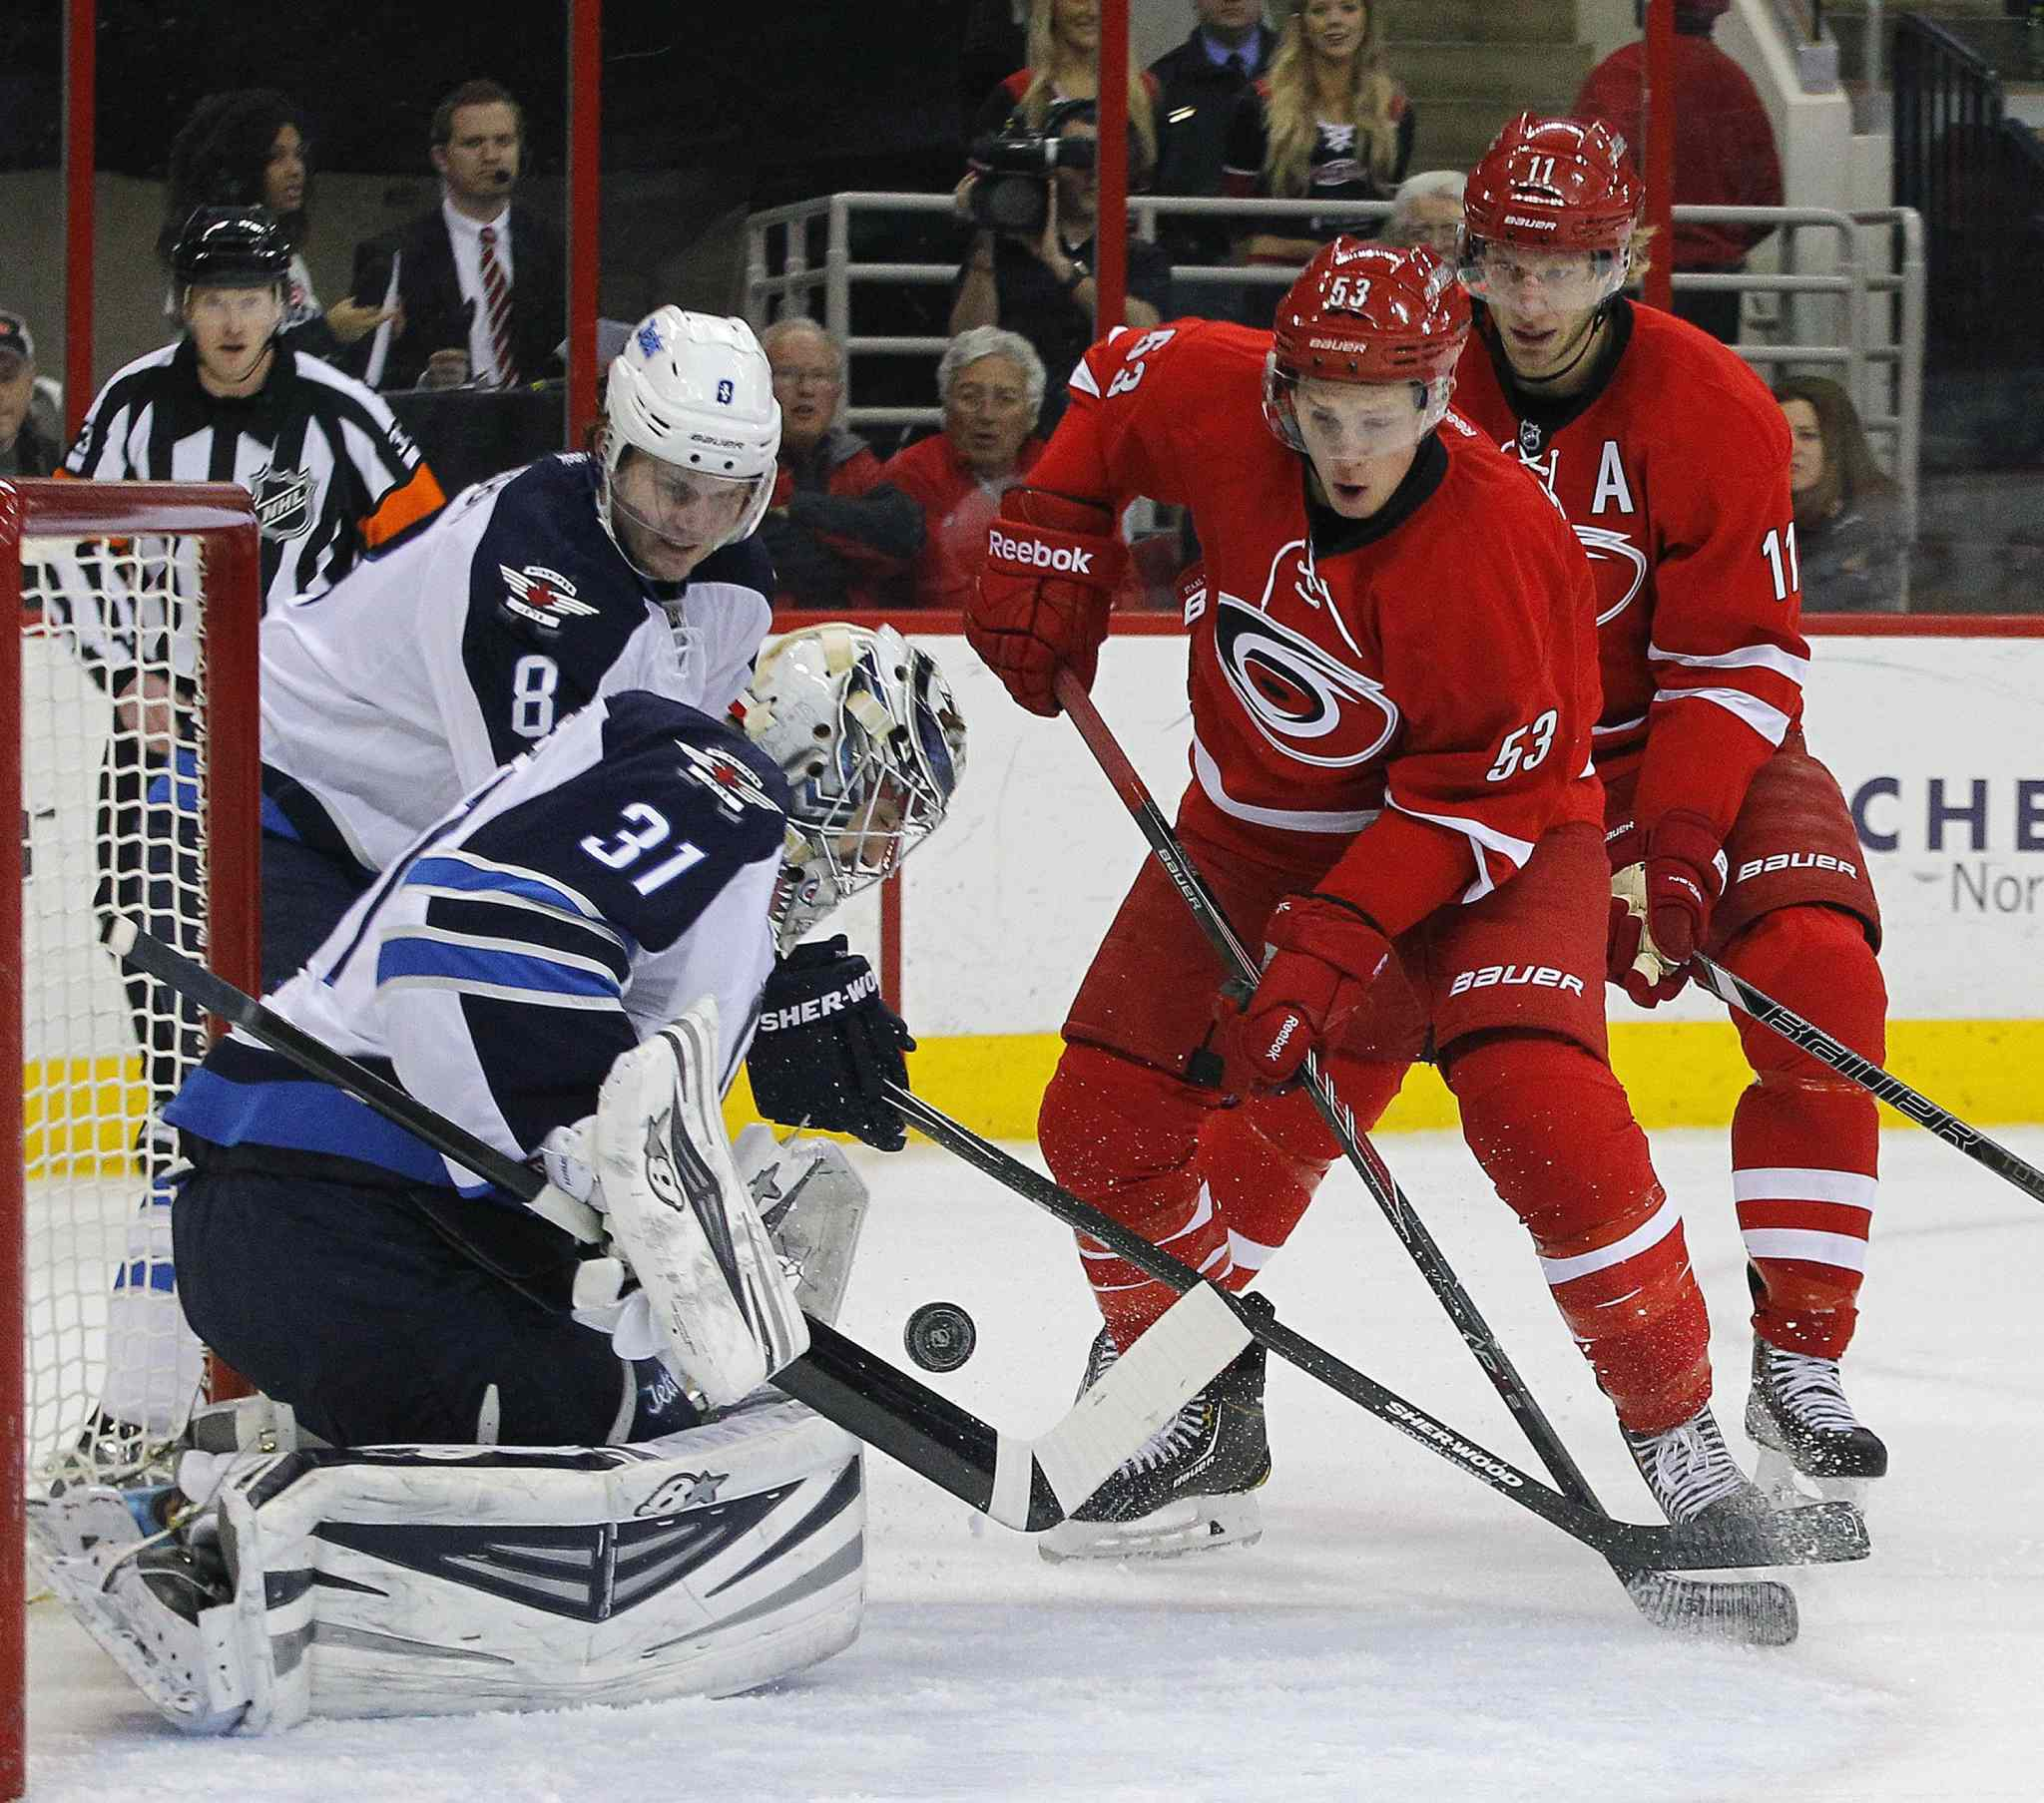 Carolina Hurricanes' Jeff Skinner (53) and Eric Staal (12) work against Winnipeg Jets' Jacob Trouba (8) and Ondrej Pavelec (31) during the first period at the PNC Arena in Raleigh, N.C., on Tuesday, Feb. 4, 2014.